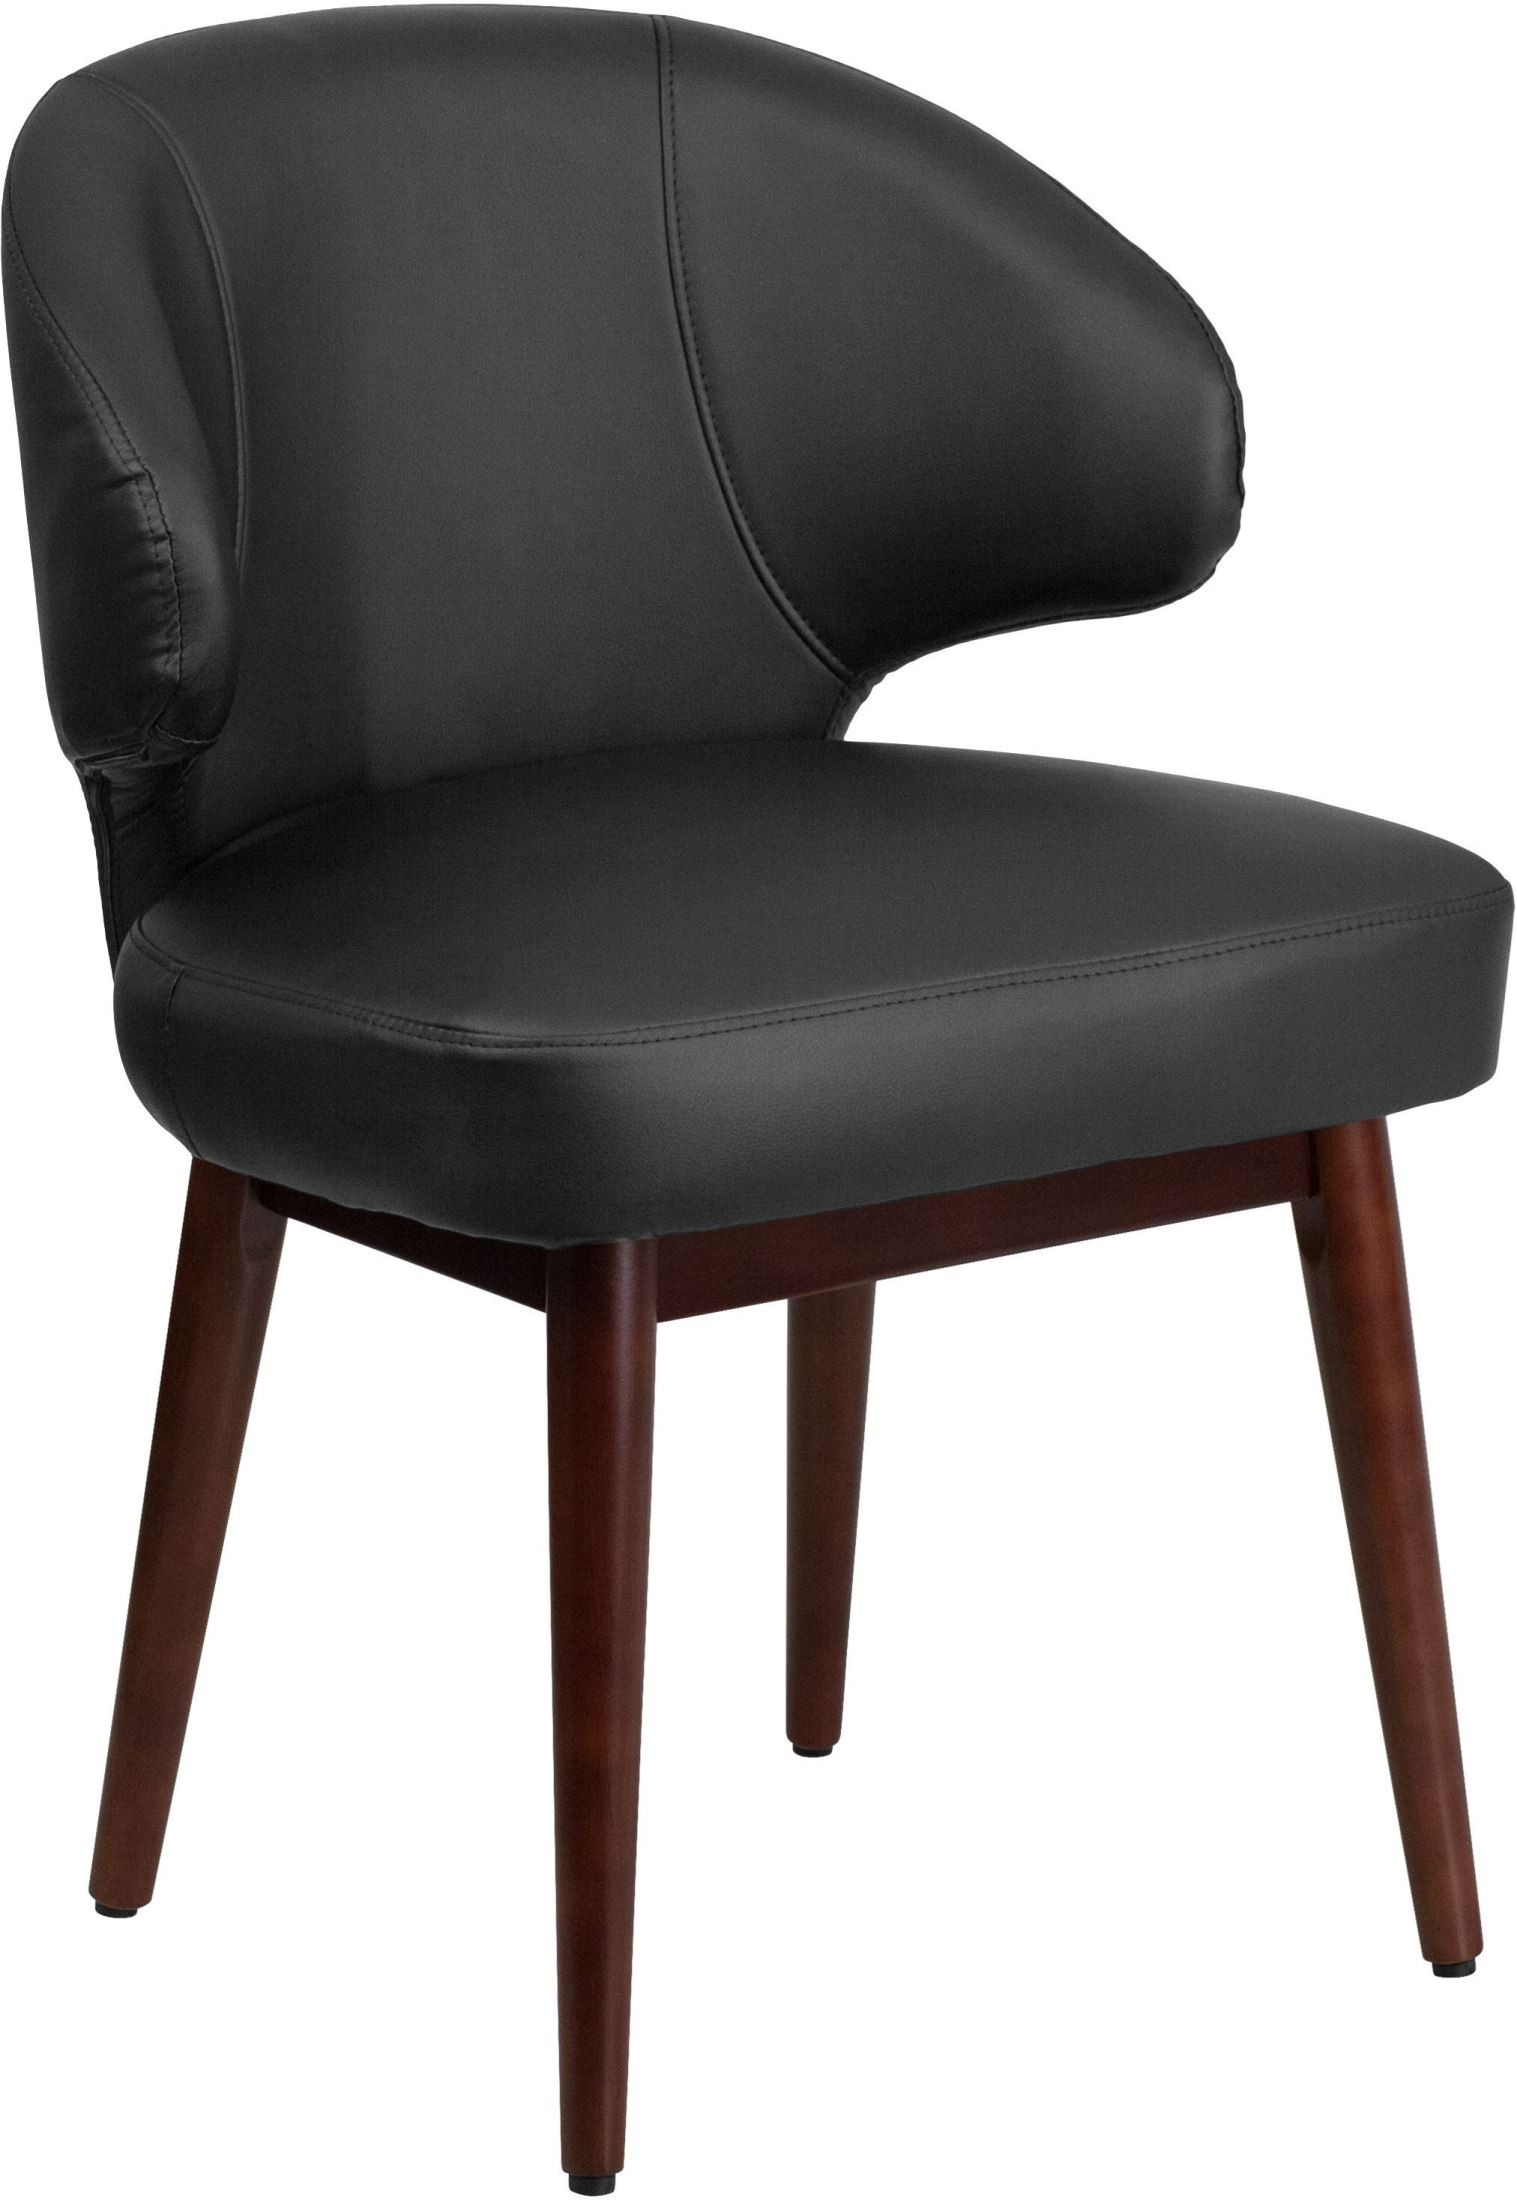 Lounge Desk Chair Comfort Back Black Reception Lounge Office Chair From